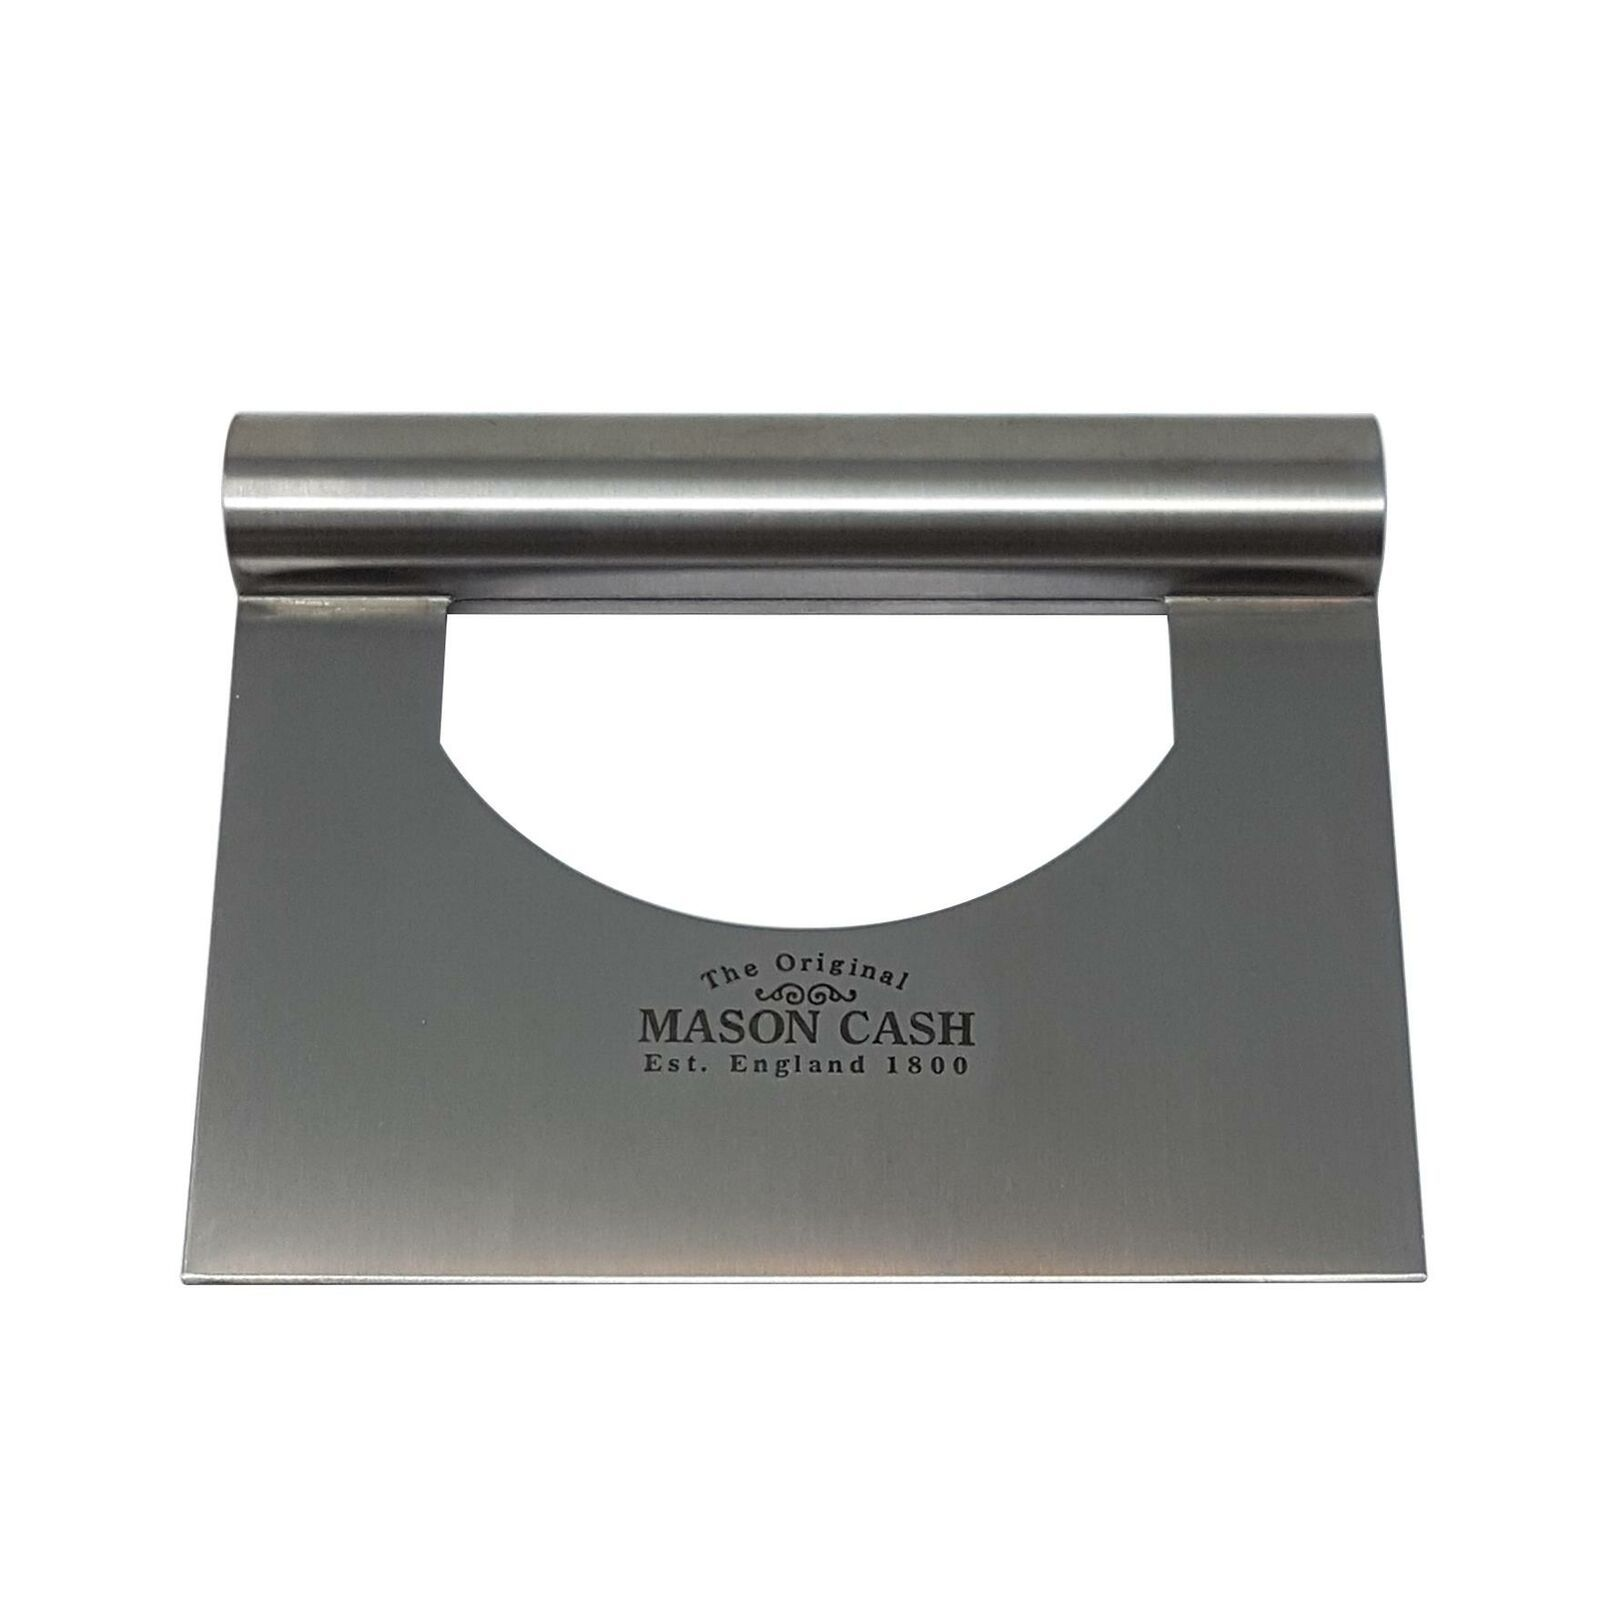 MASON CASH BENCH STEEL DOUGH BAKING SCRAPER MULTI TOOL